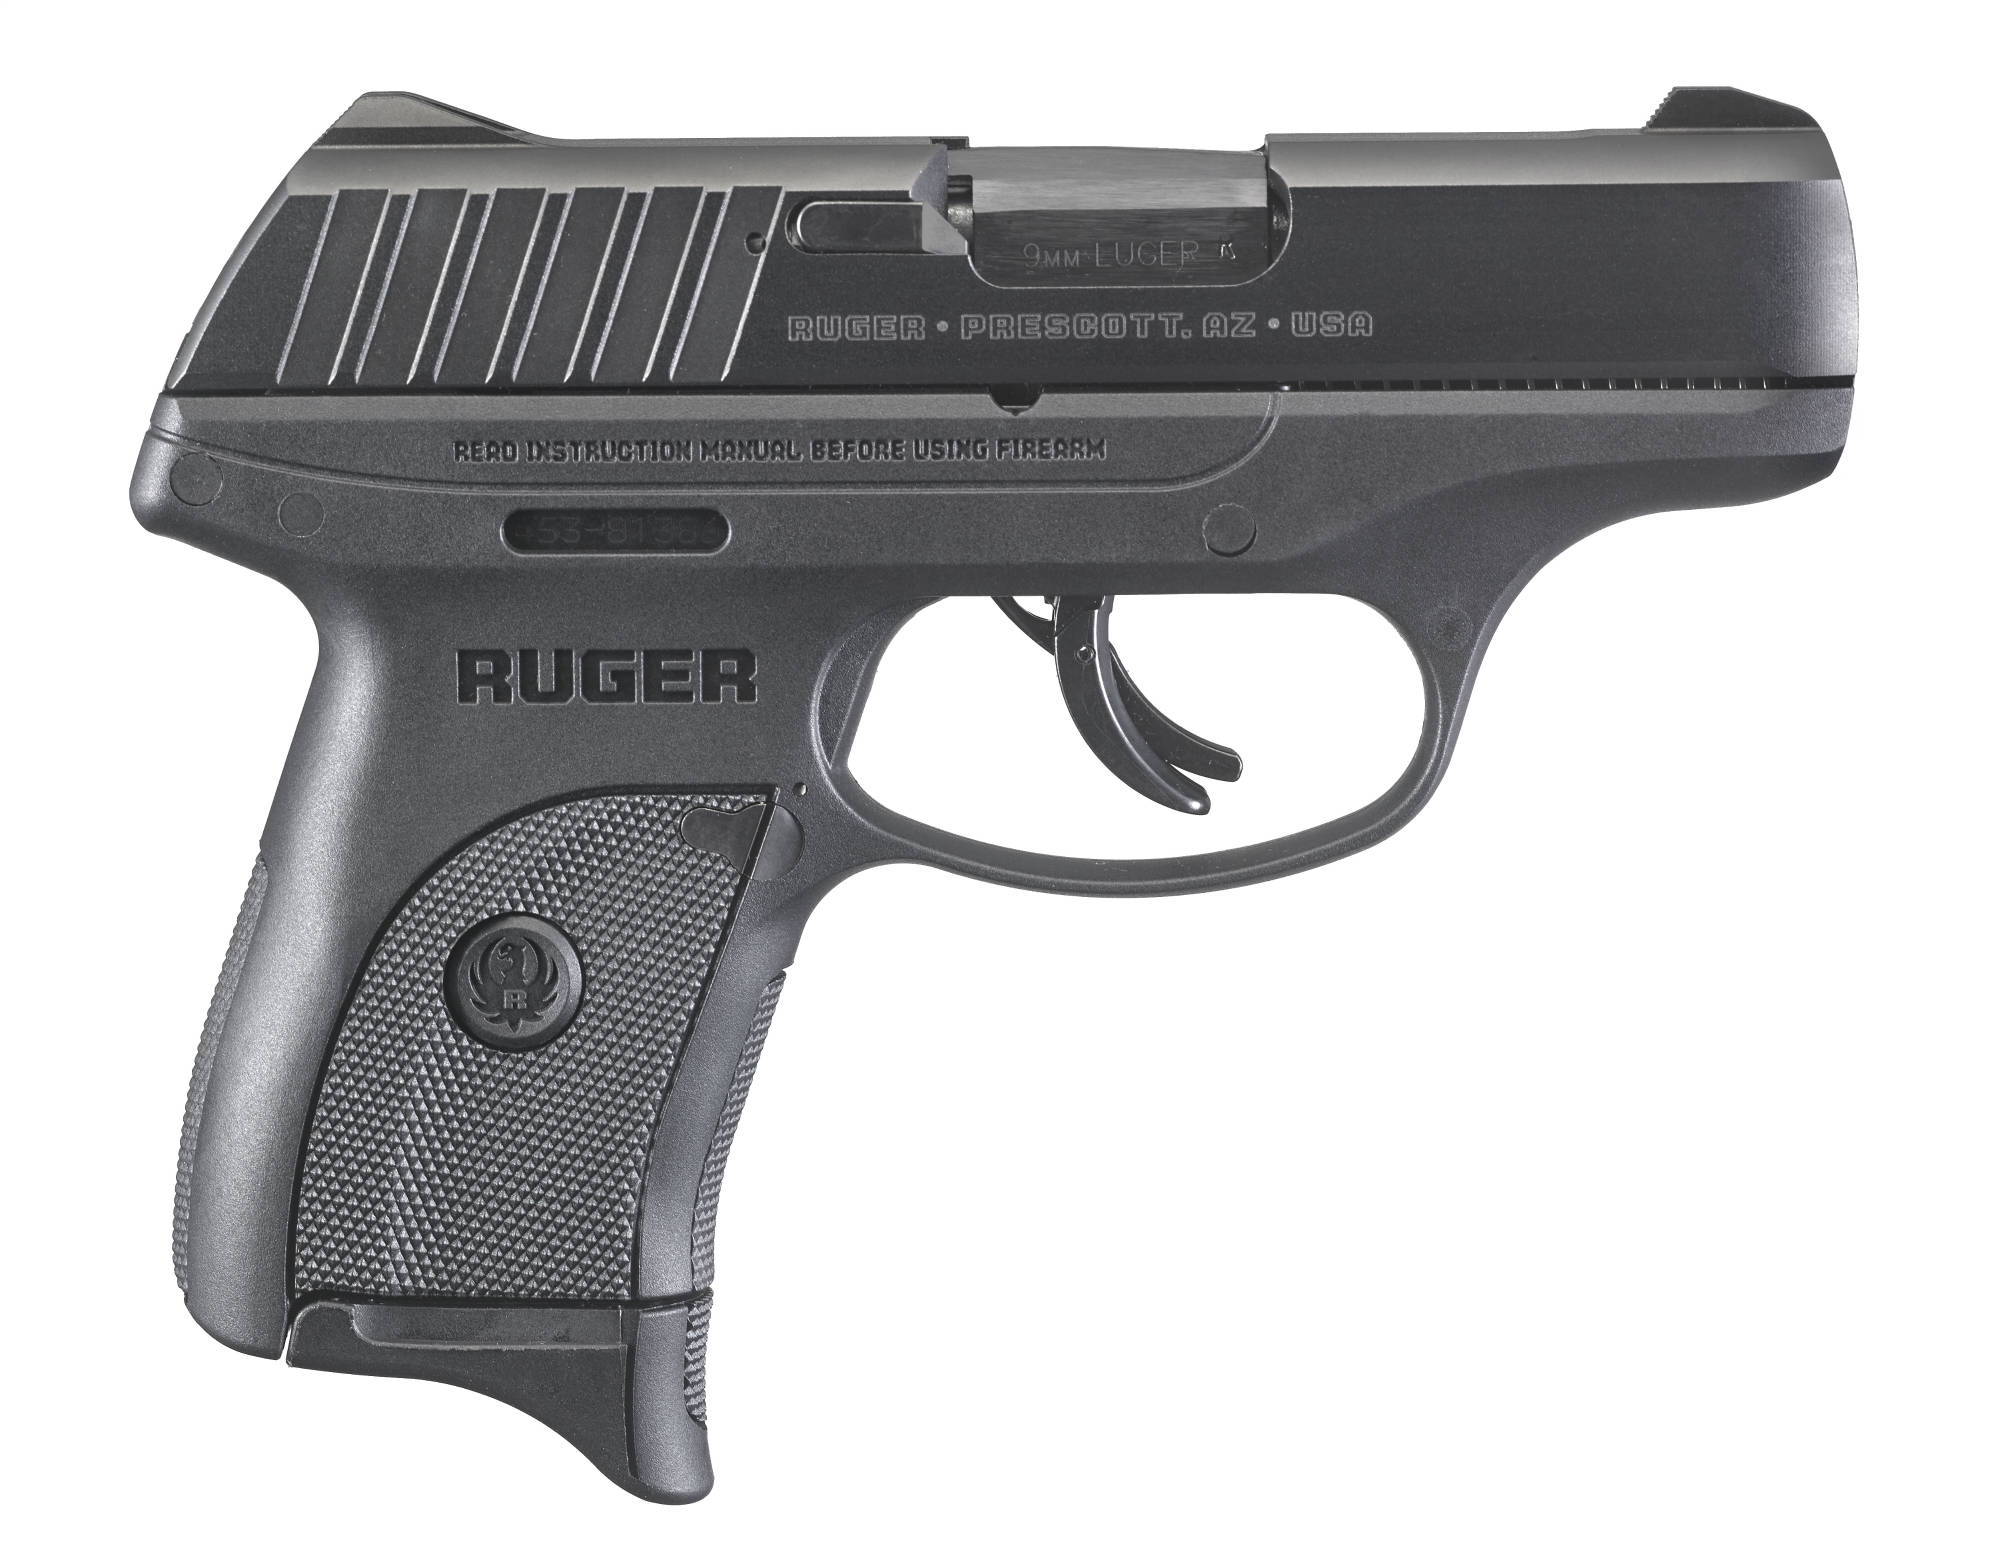 Right view of the Ruger EC9s 9mm pistol